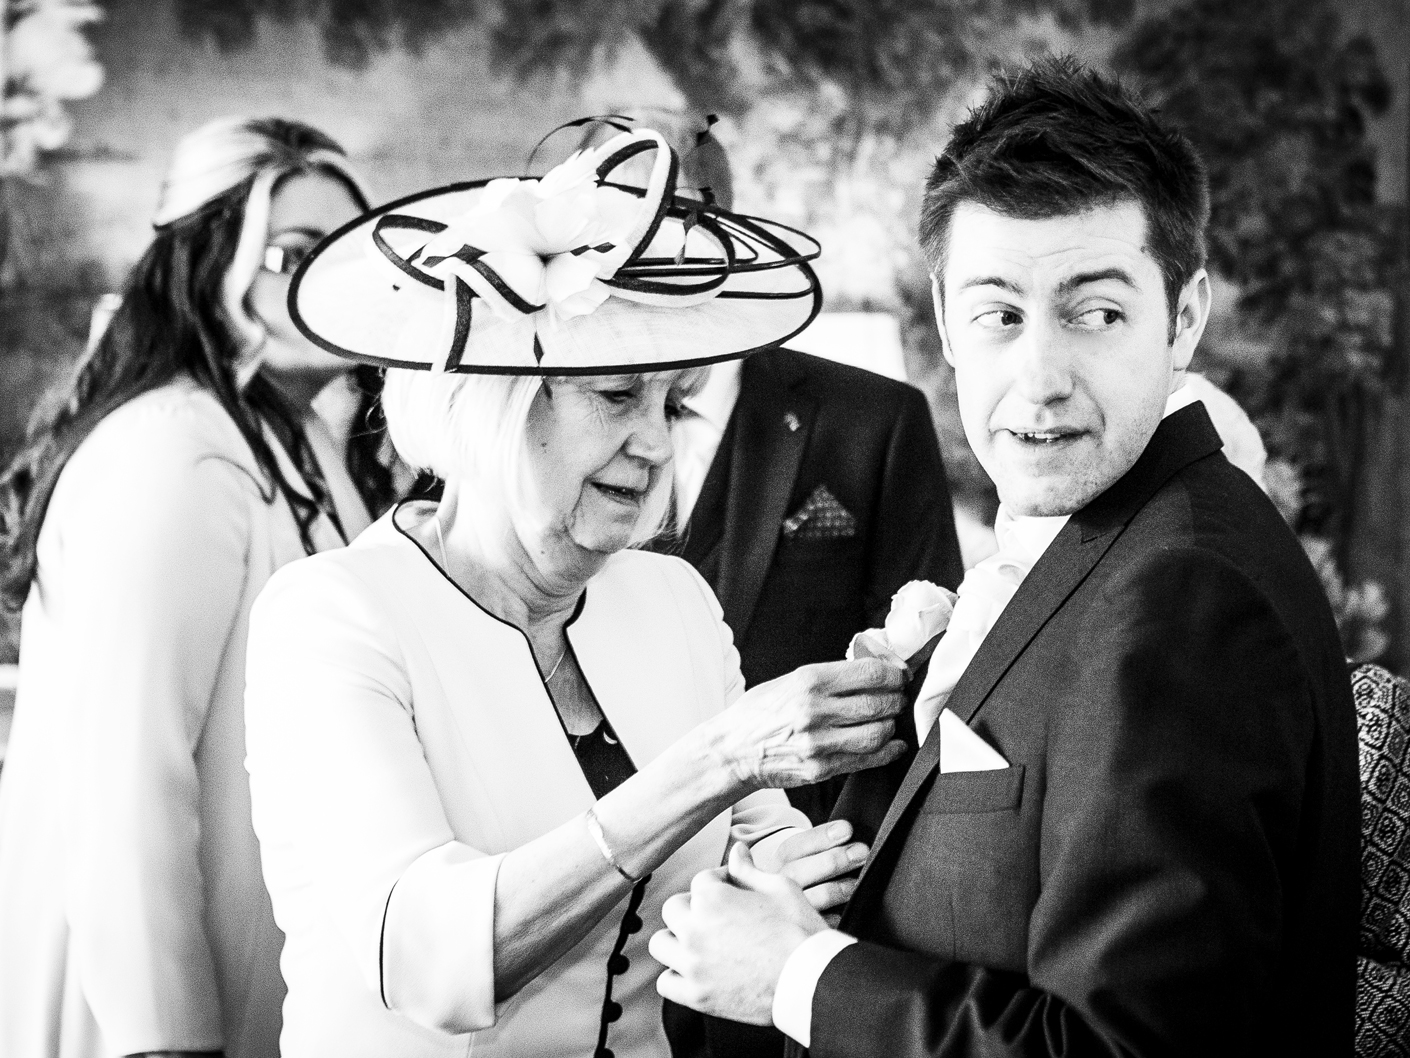 wedding-photography-of-the-groom-at-hotel-thornton-manor-wirral